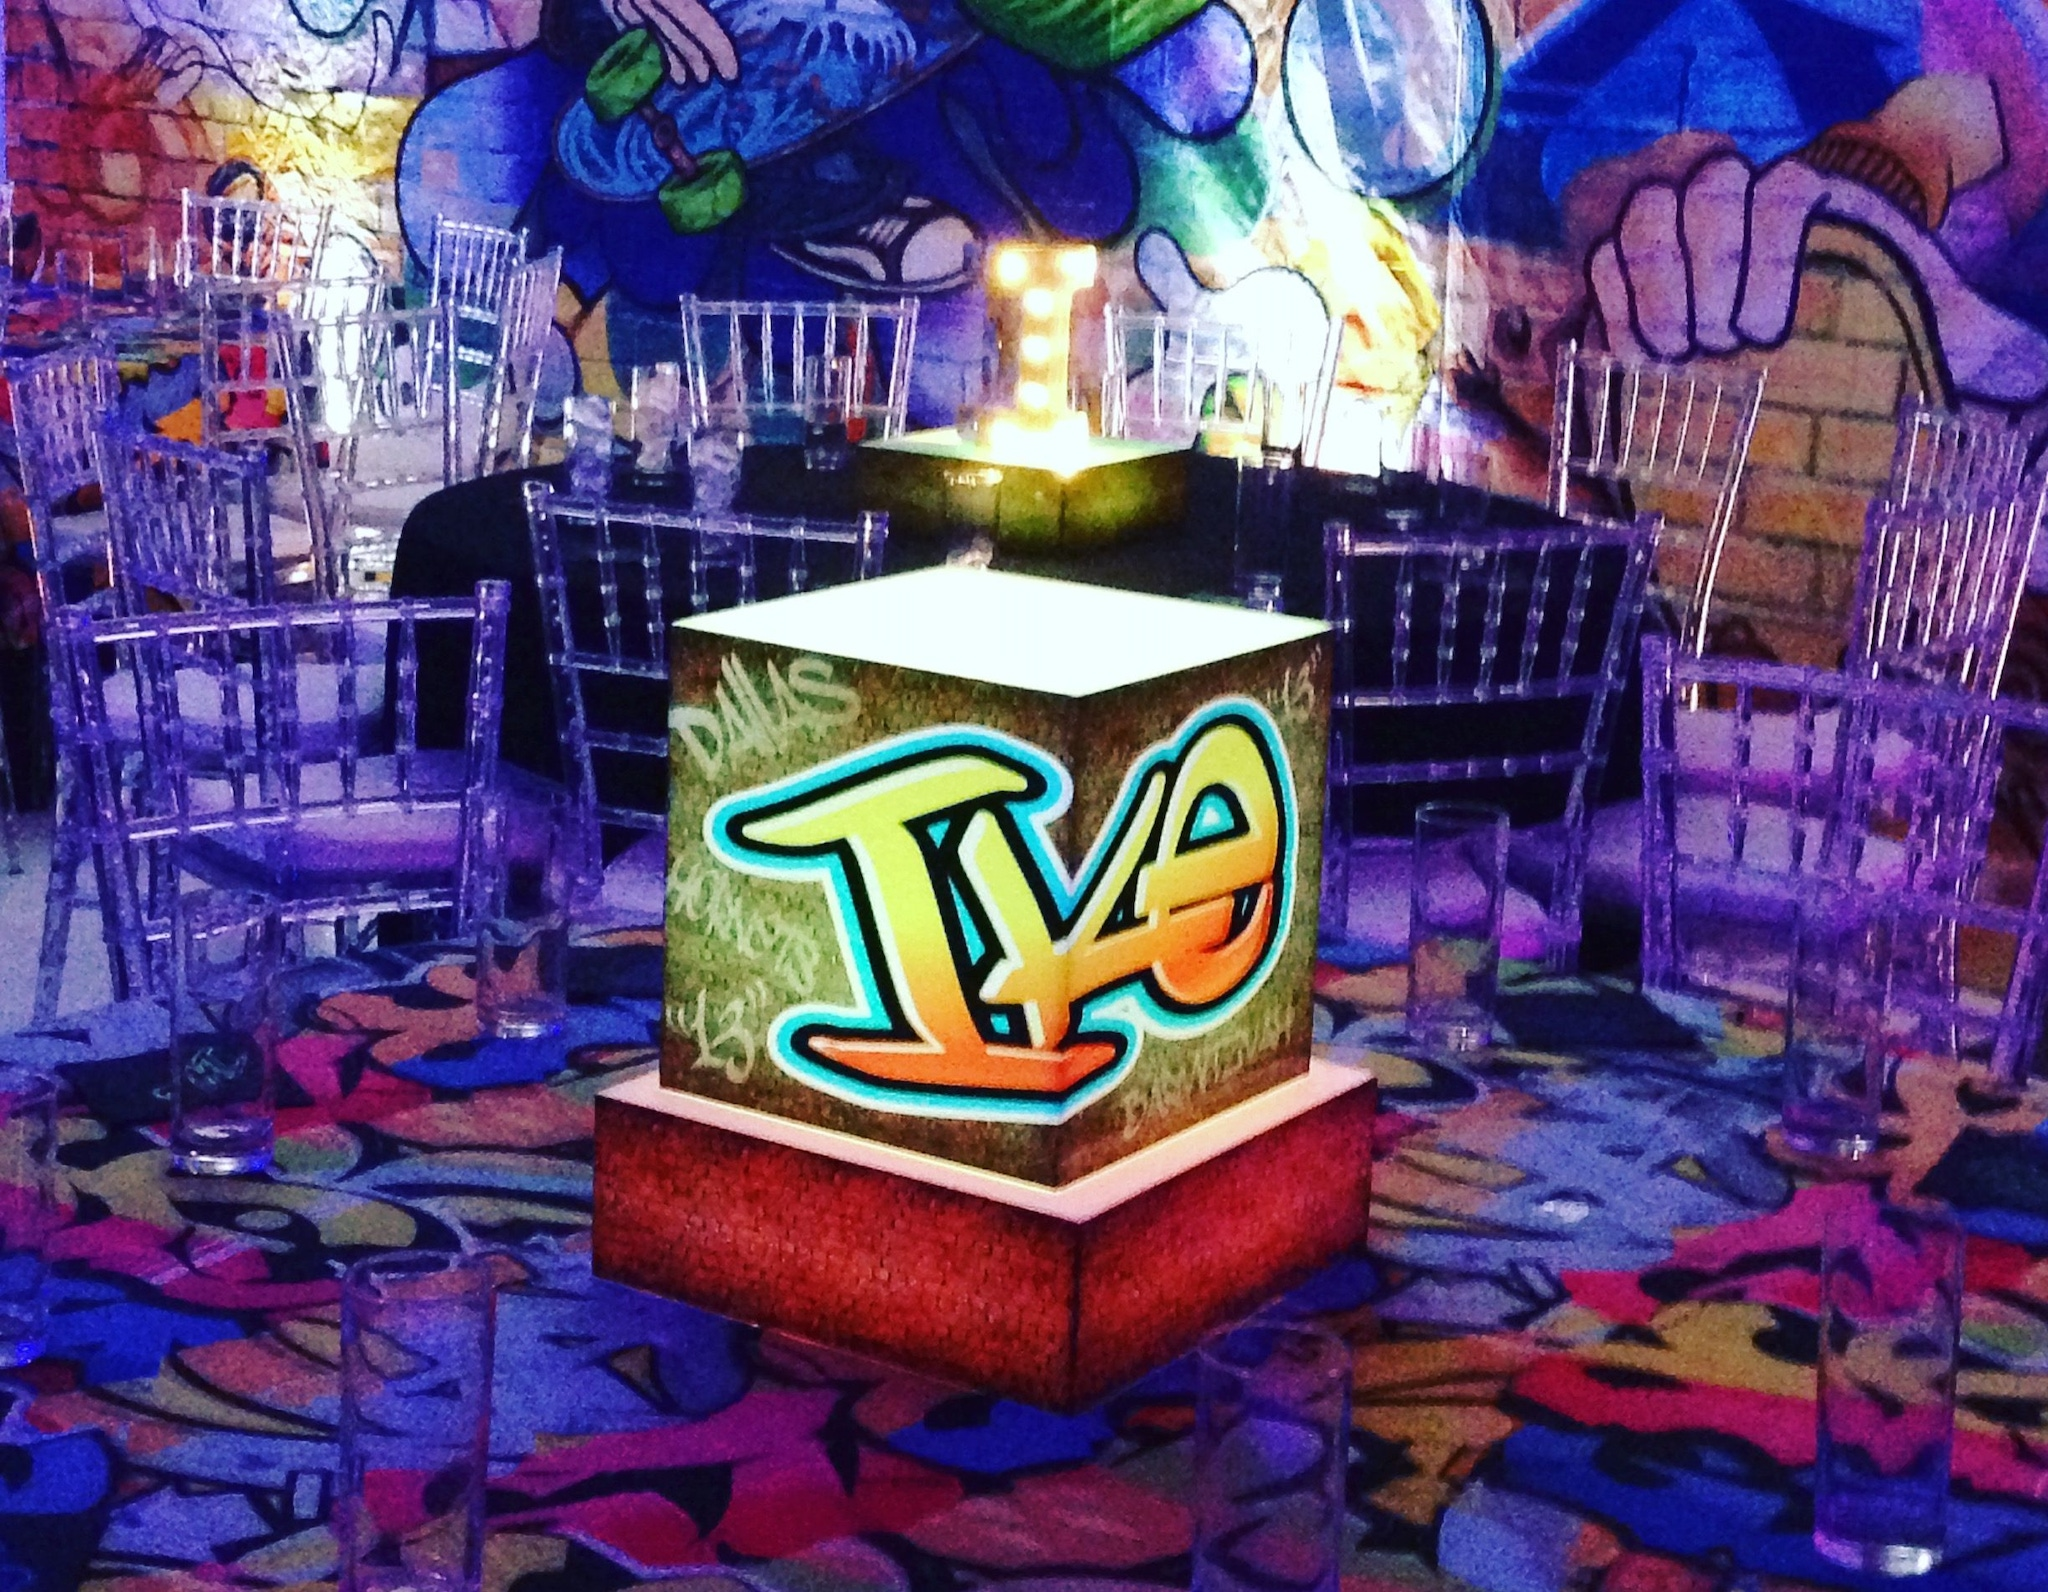 Graffiti themed mitzvah